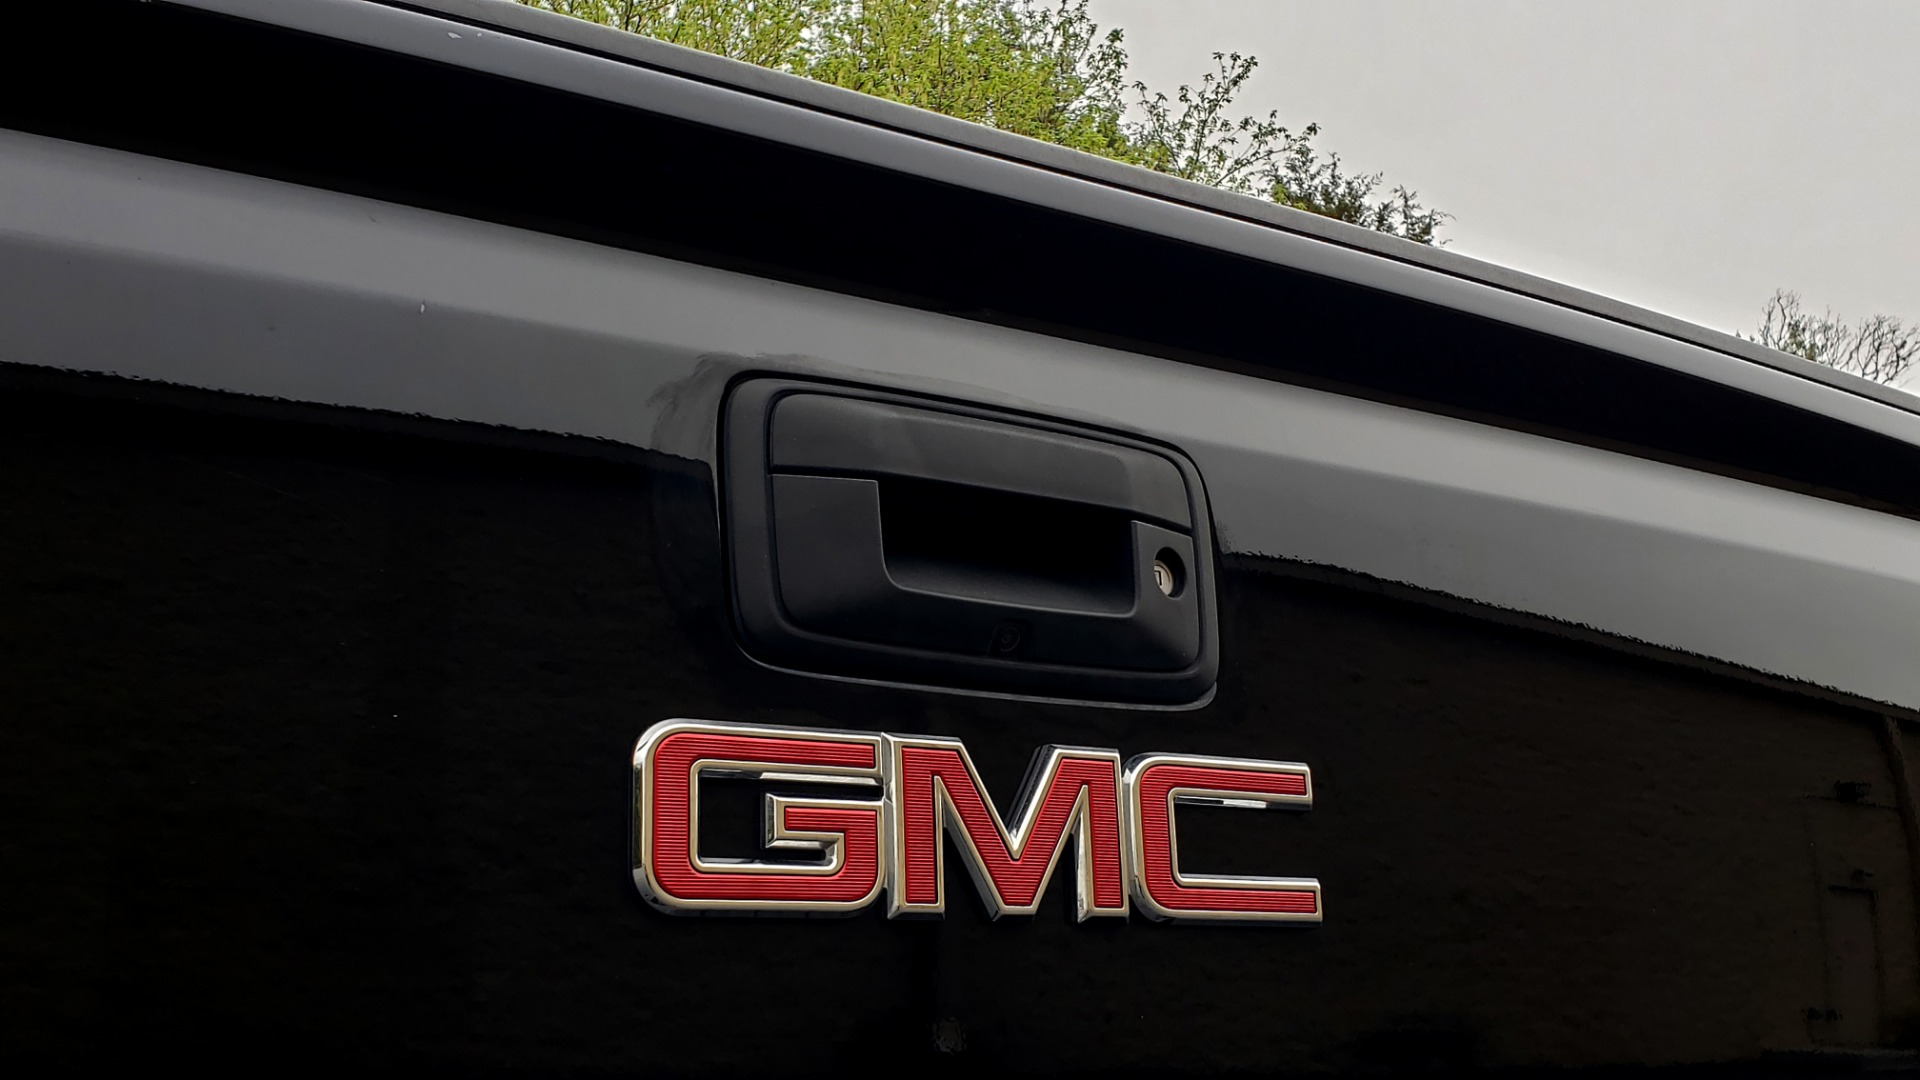 Used 2015 GMC SIERRA 1500 SLT 4WD CREW CAB / 6.2L V8 / NAV / BOSE / REARVIEW for sale Sold at Formula Imports in Charlotte NC 28227 29